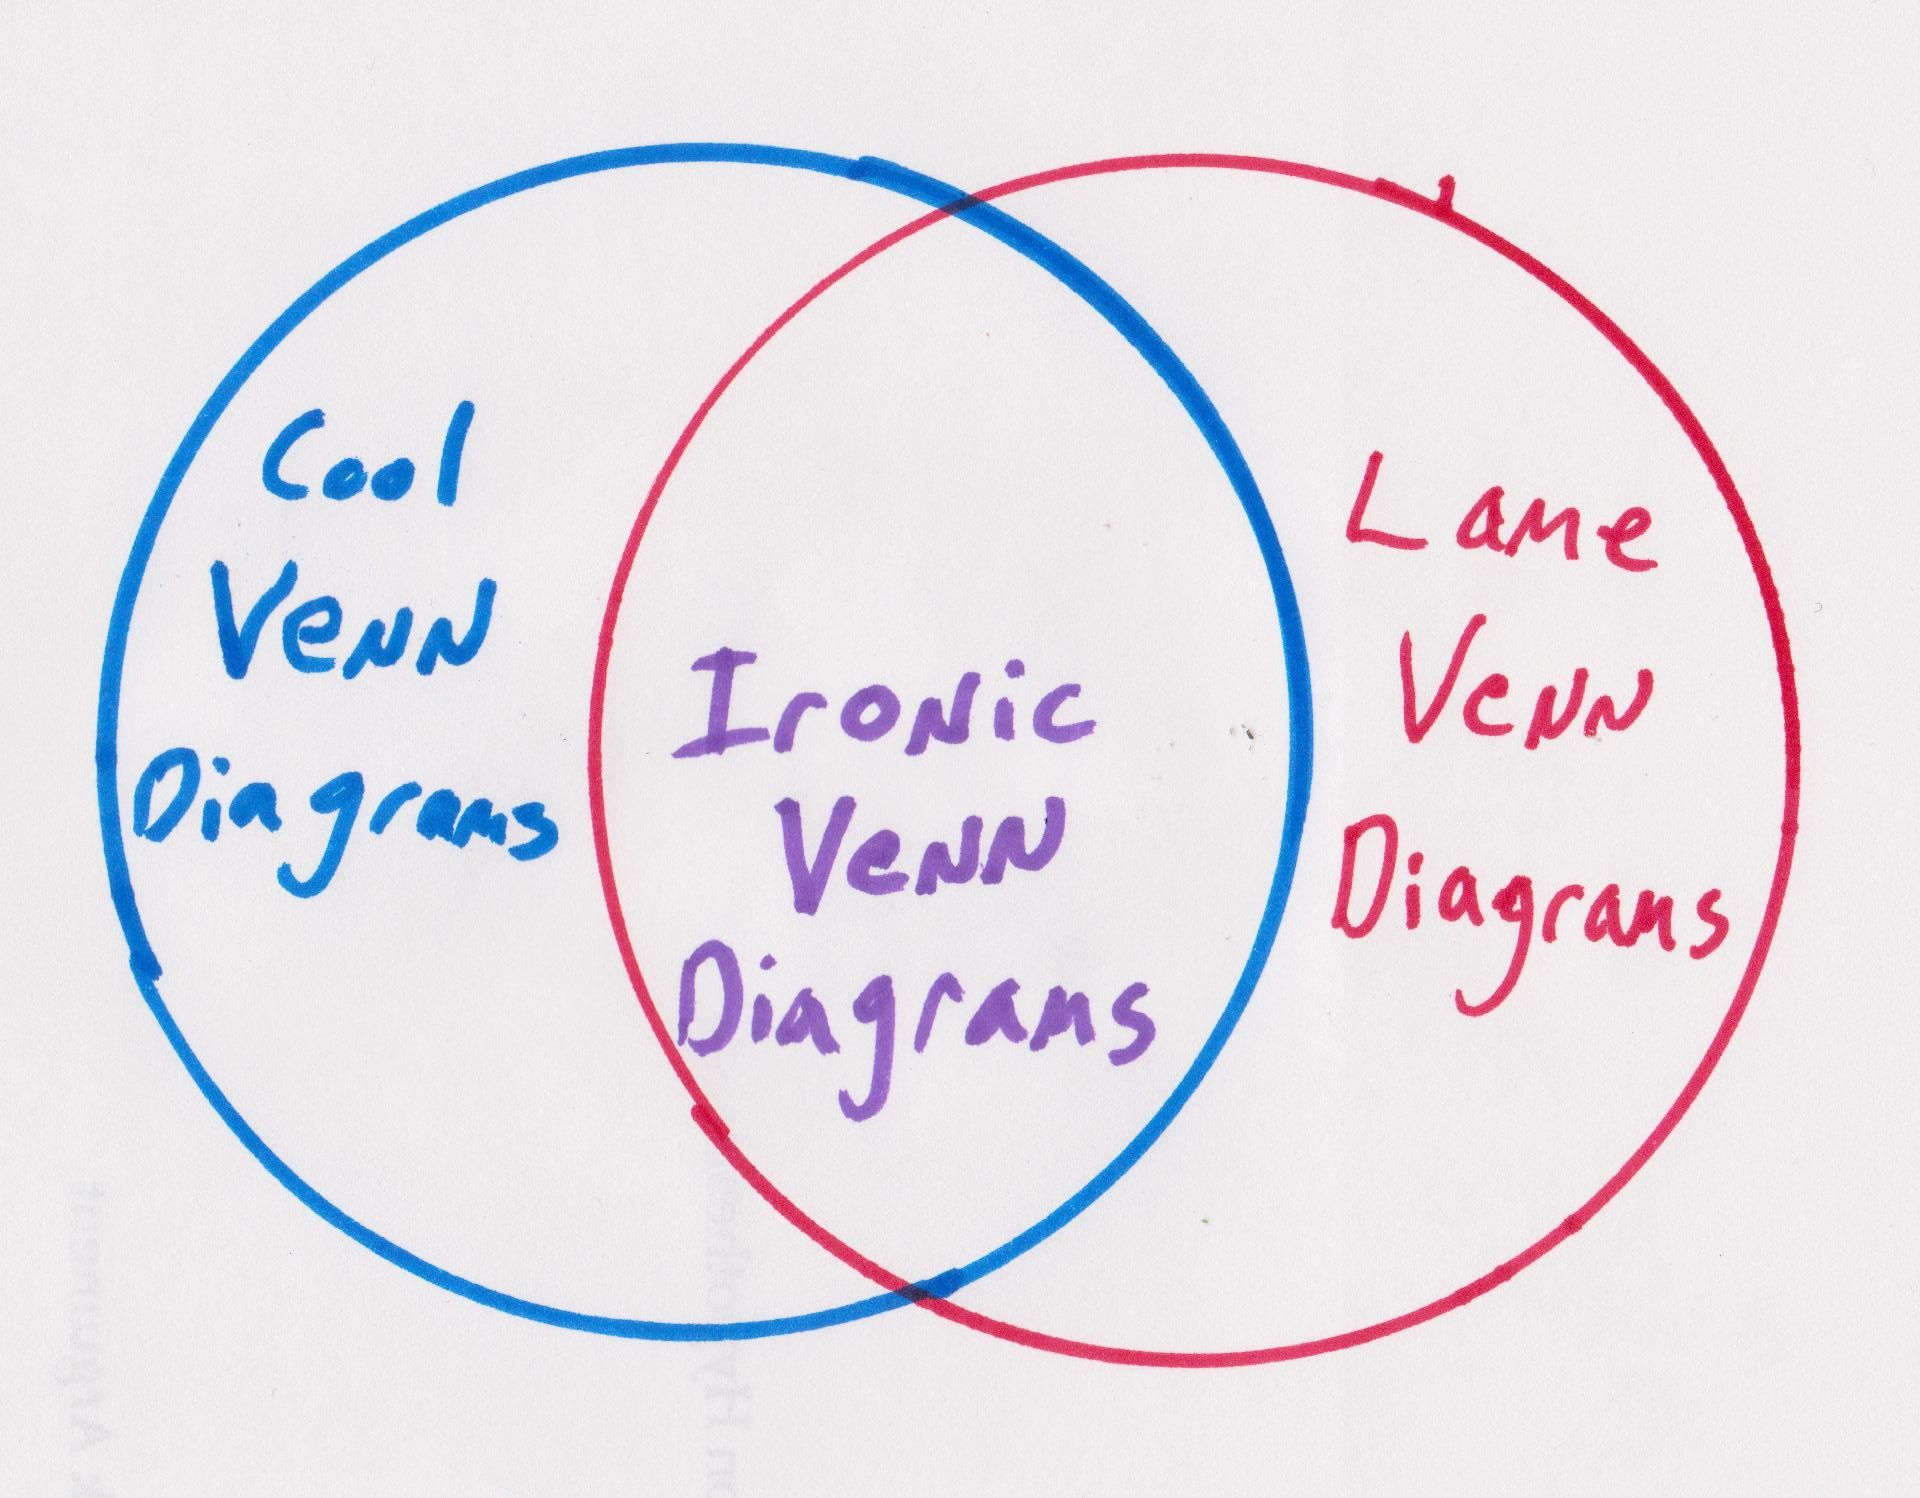 Venn diagrams diagram designed and drawn by murfmensch venn diagrams diagram designed and drawn by murfmensch pooptronica Image collections